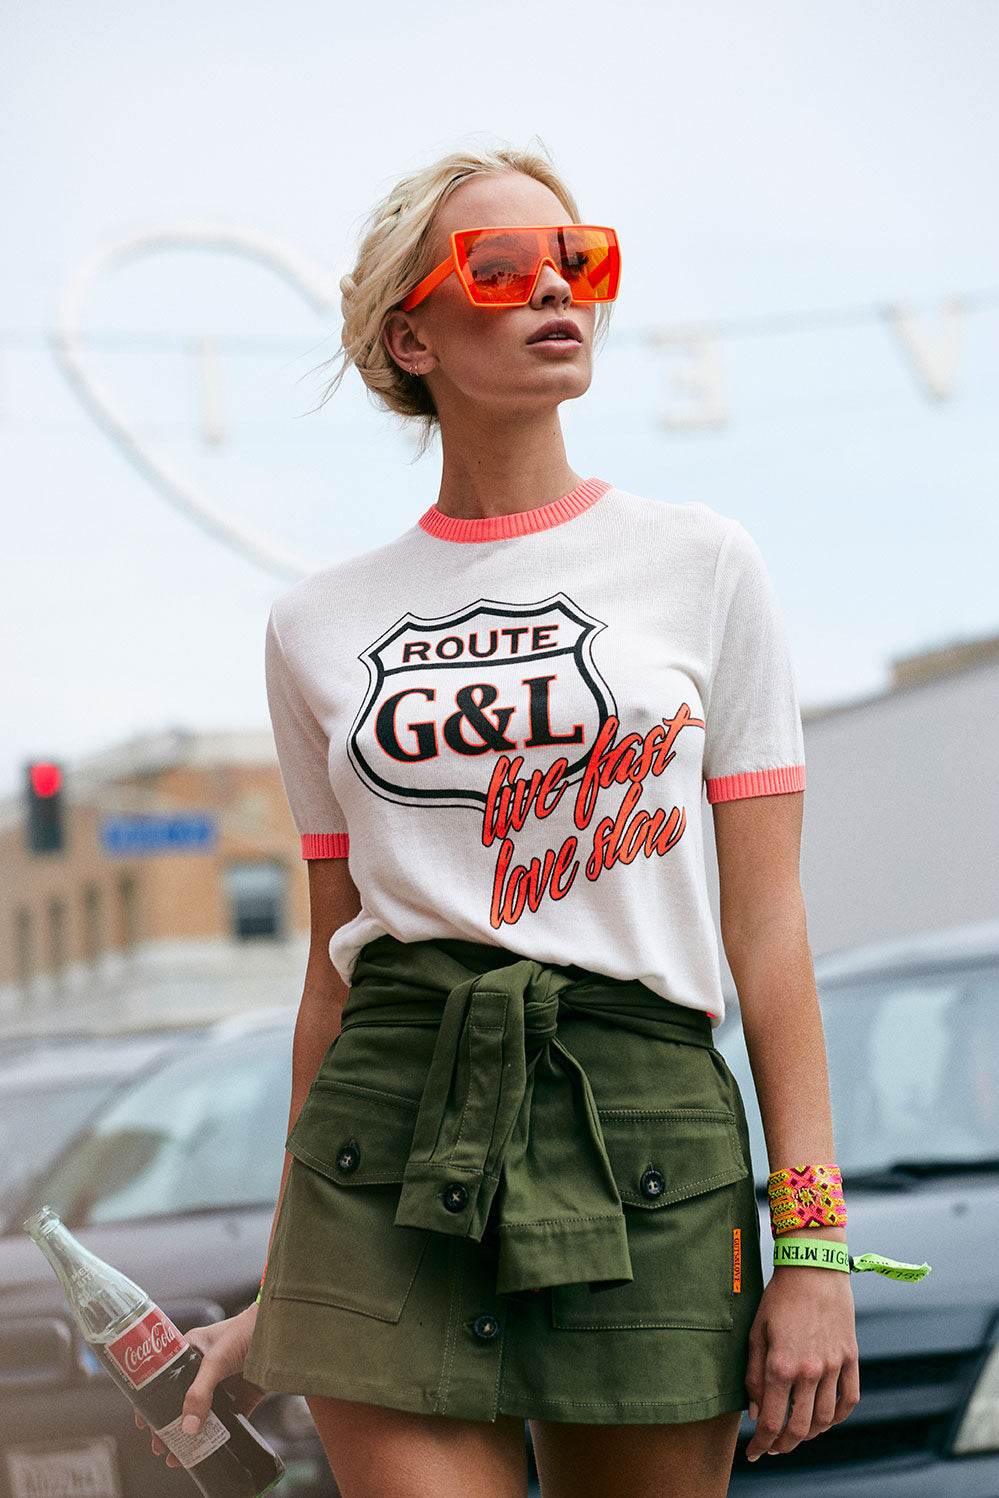 ROUTE G&L TEE